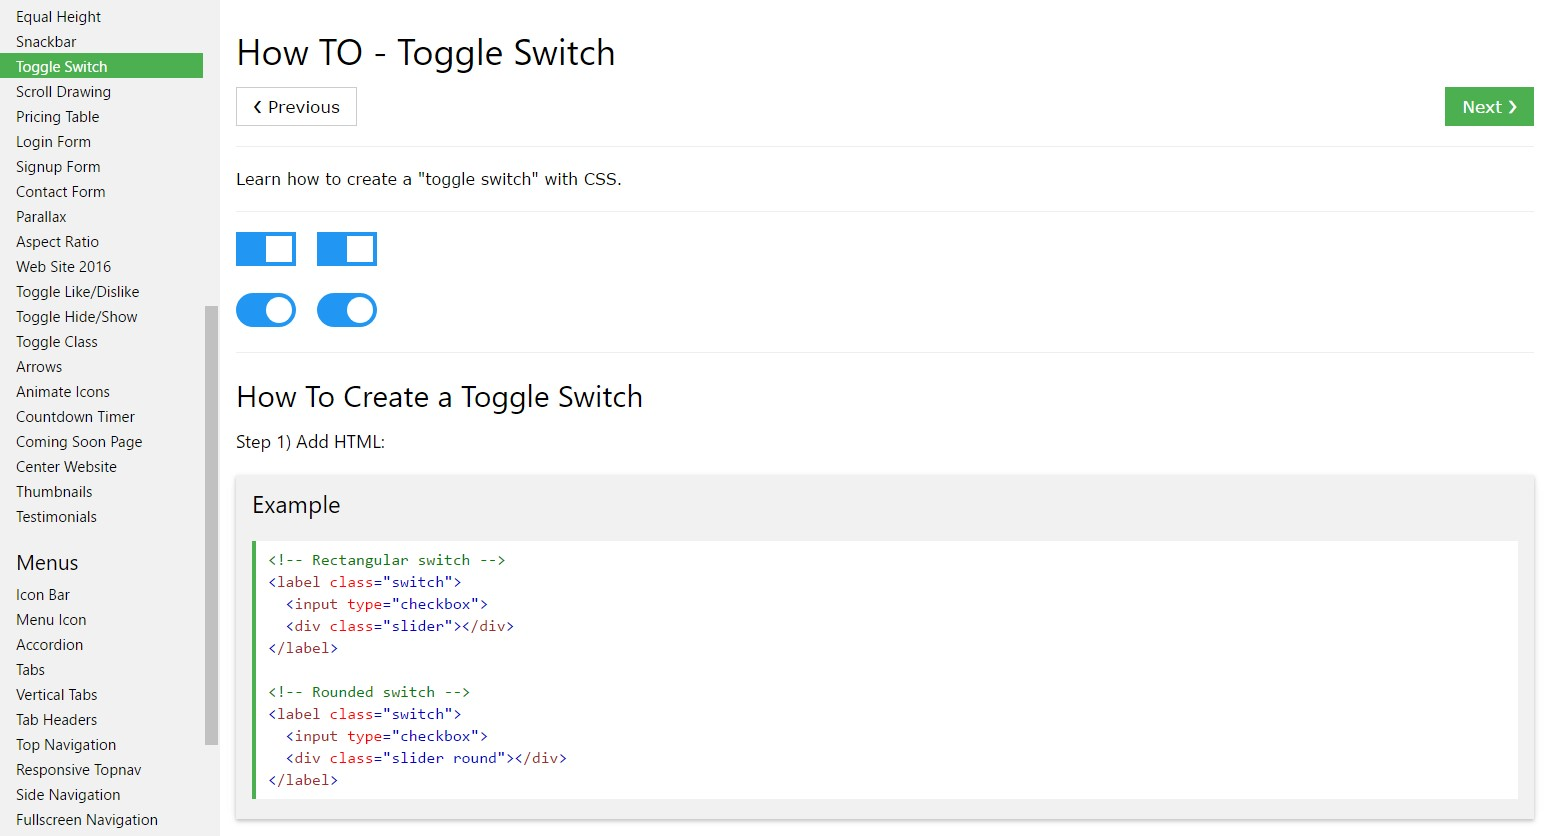 The ways to  develop Toggle Switch